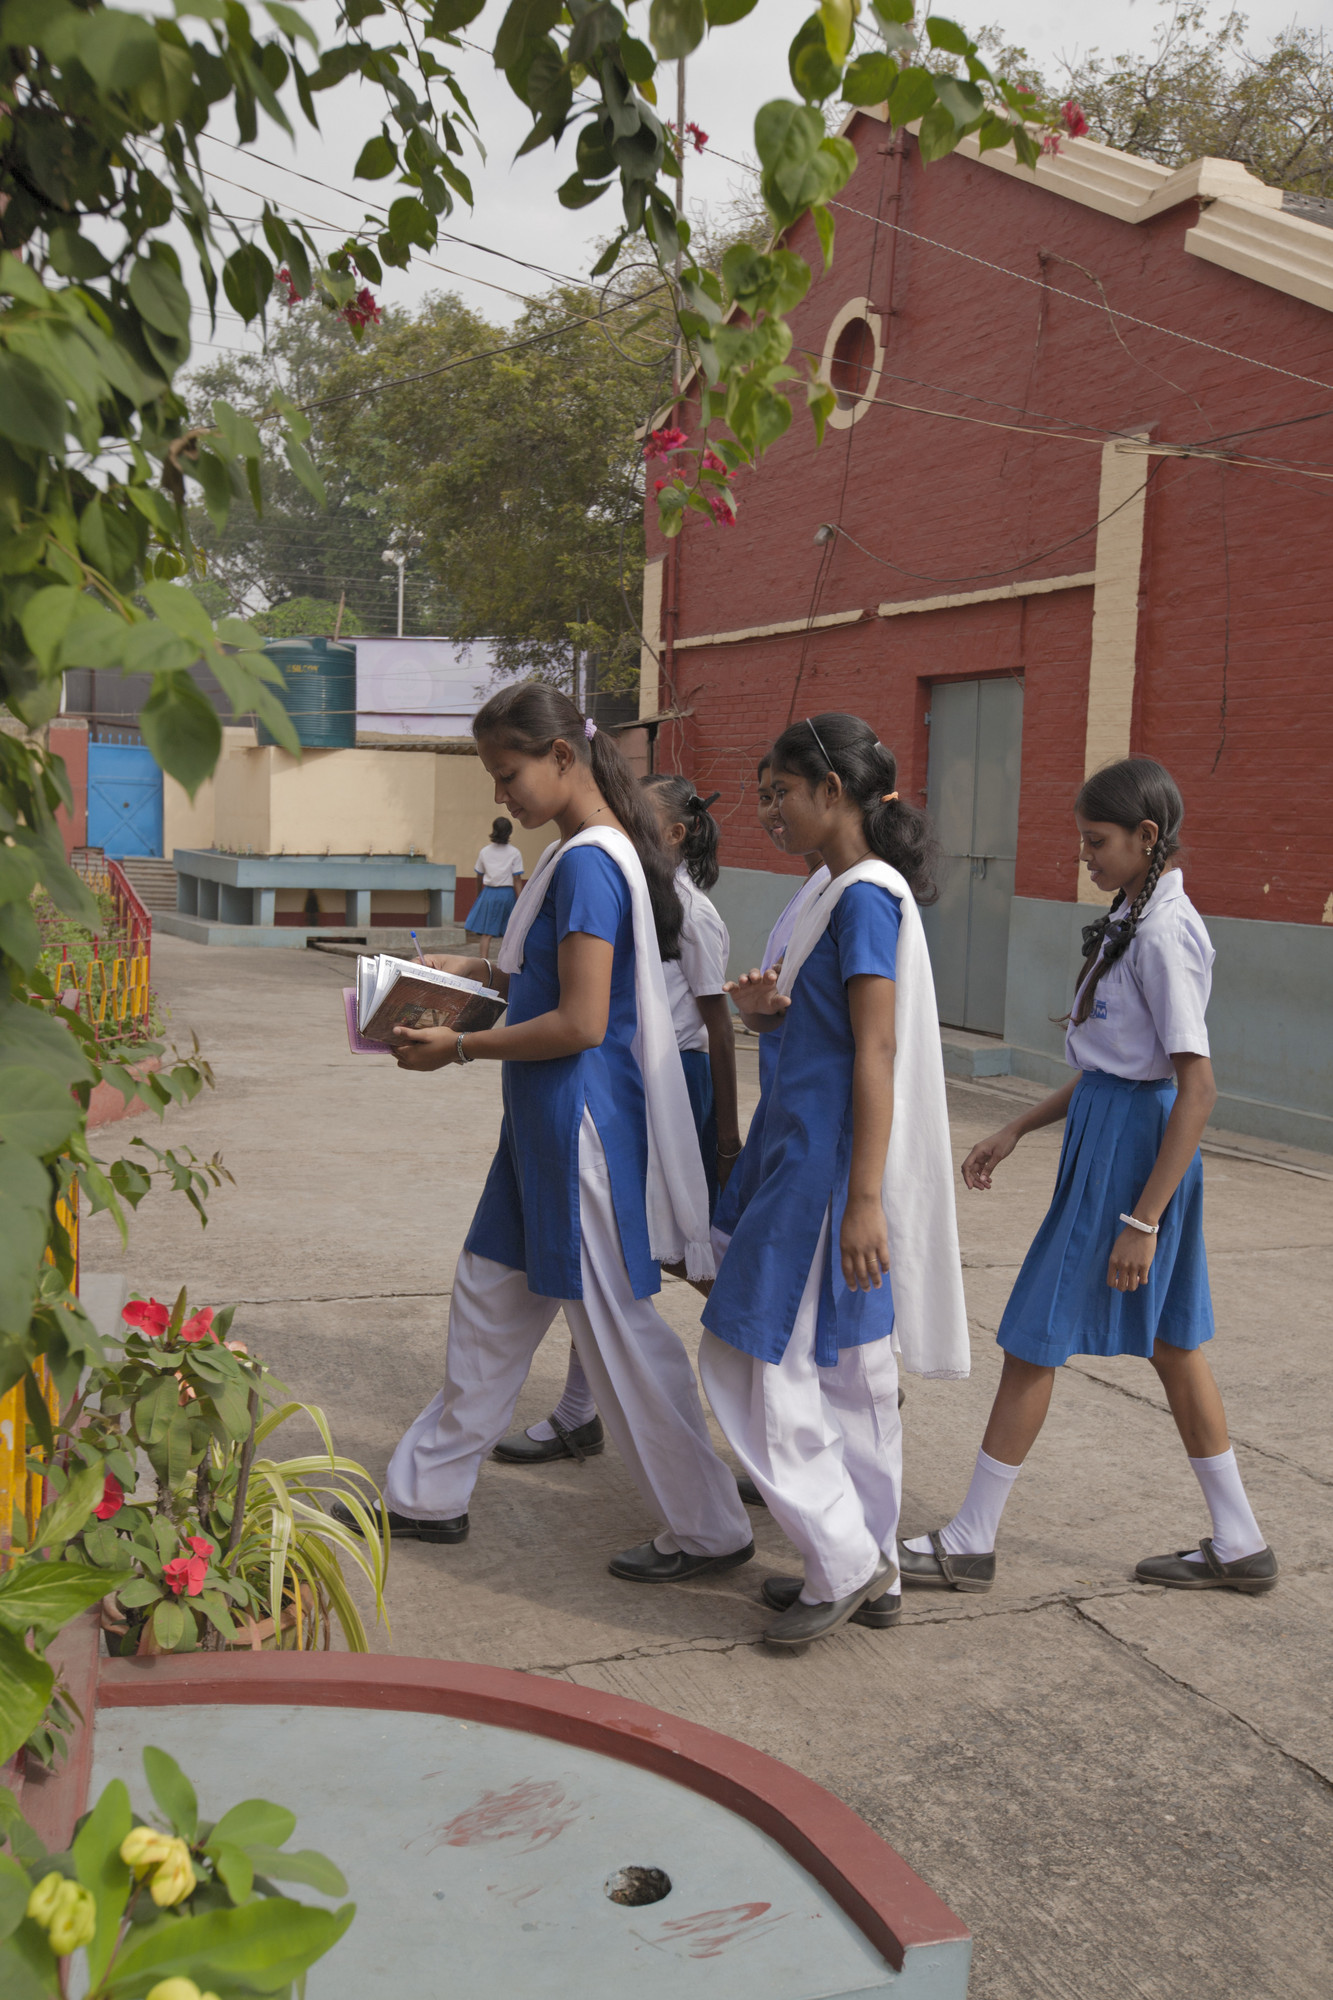 students in school uniforms